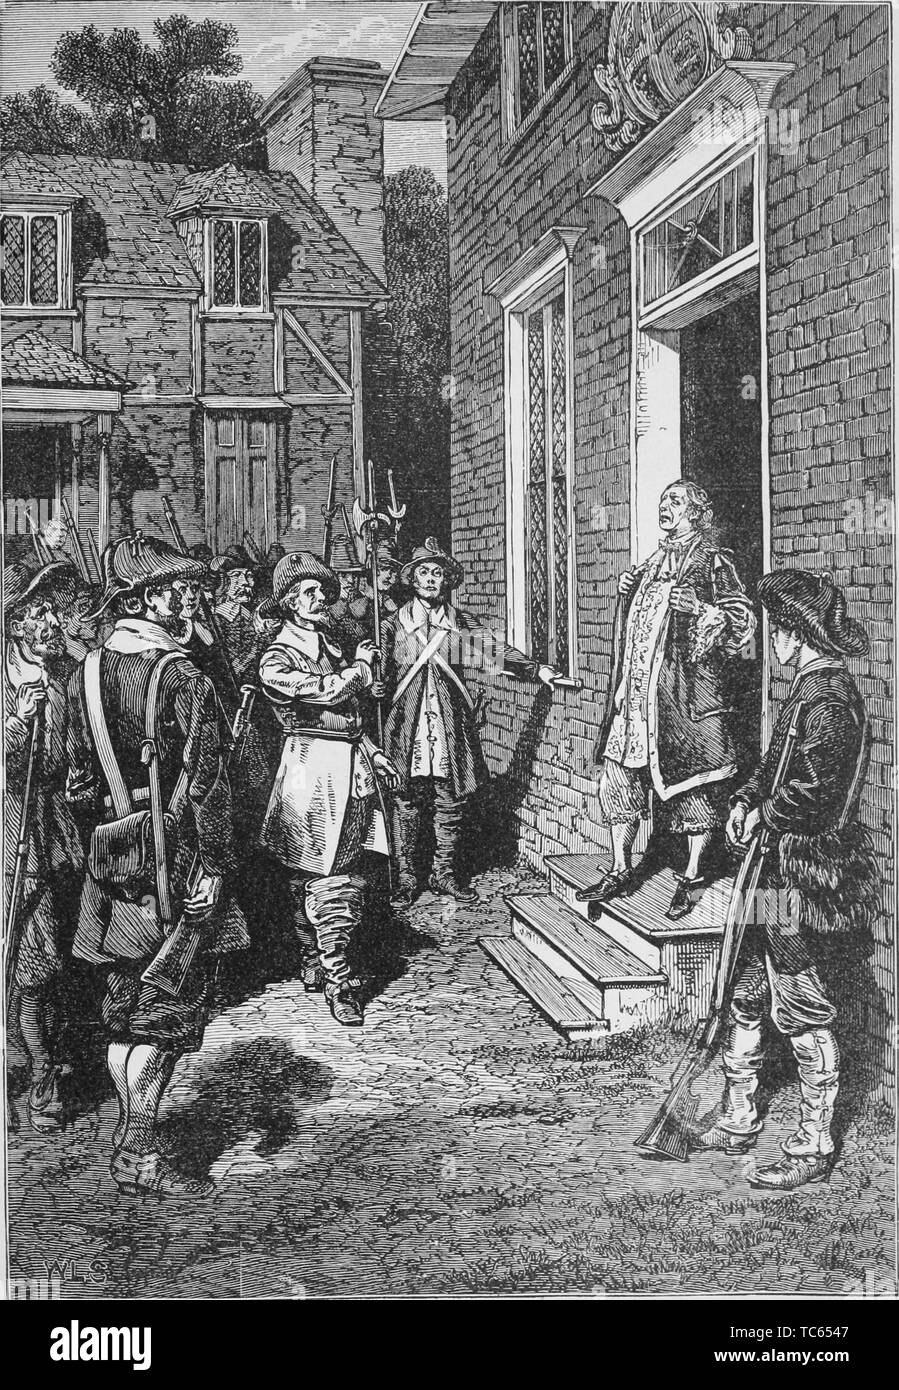 Engraving of Governor William Berkeley speaking to the rebels, from the book 'A popular history of the United States of America, from the aboriginal times to the present day' by John Clark Ridpath, 1893. Courtesy Internet Archive. () Stock Photo